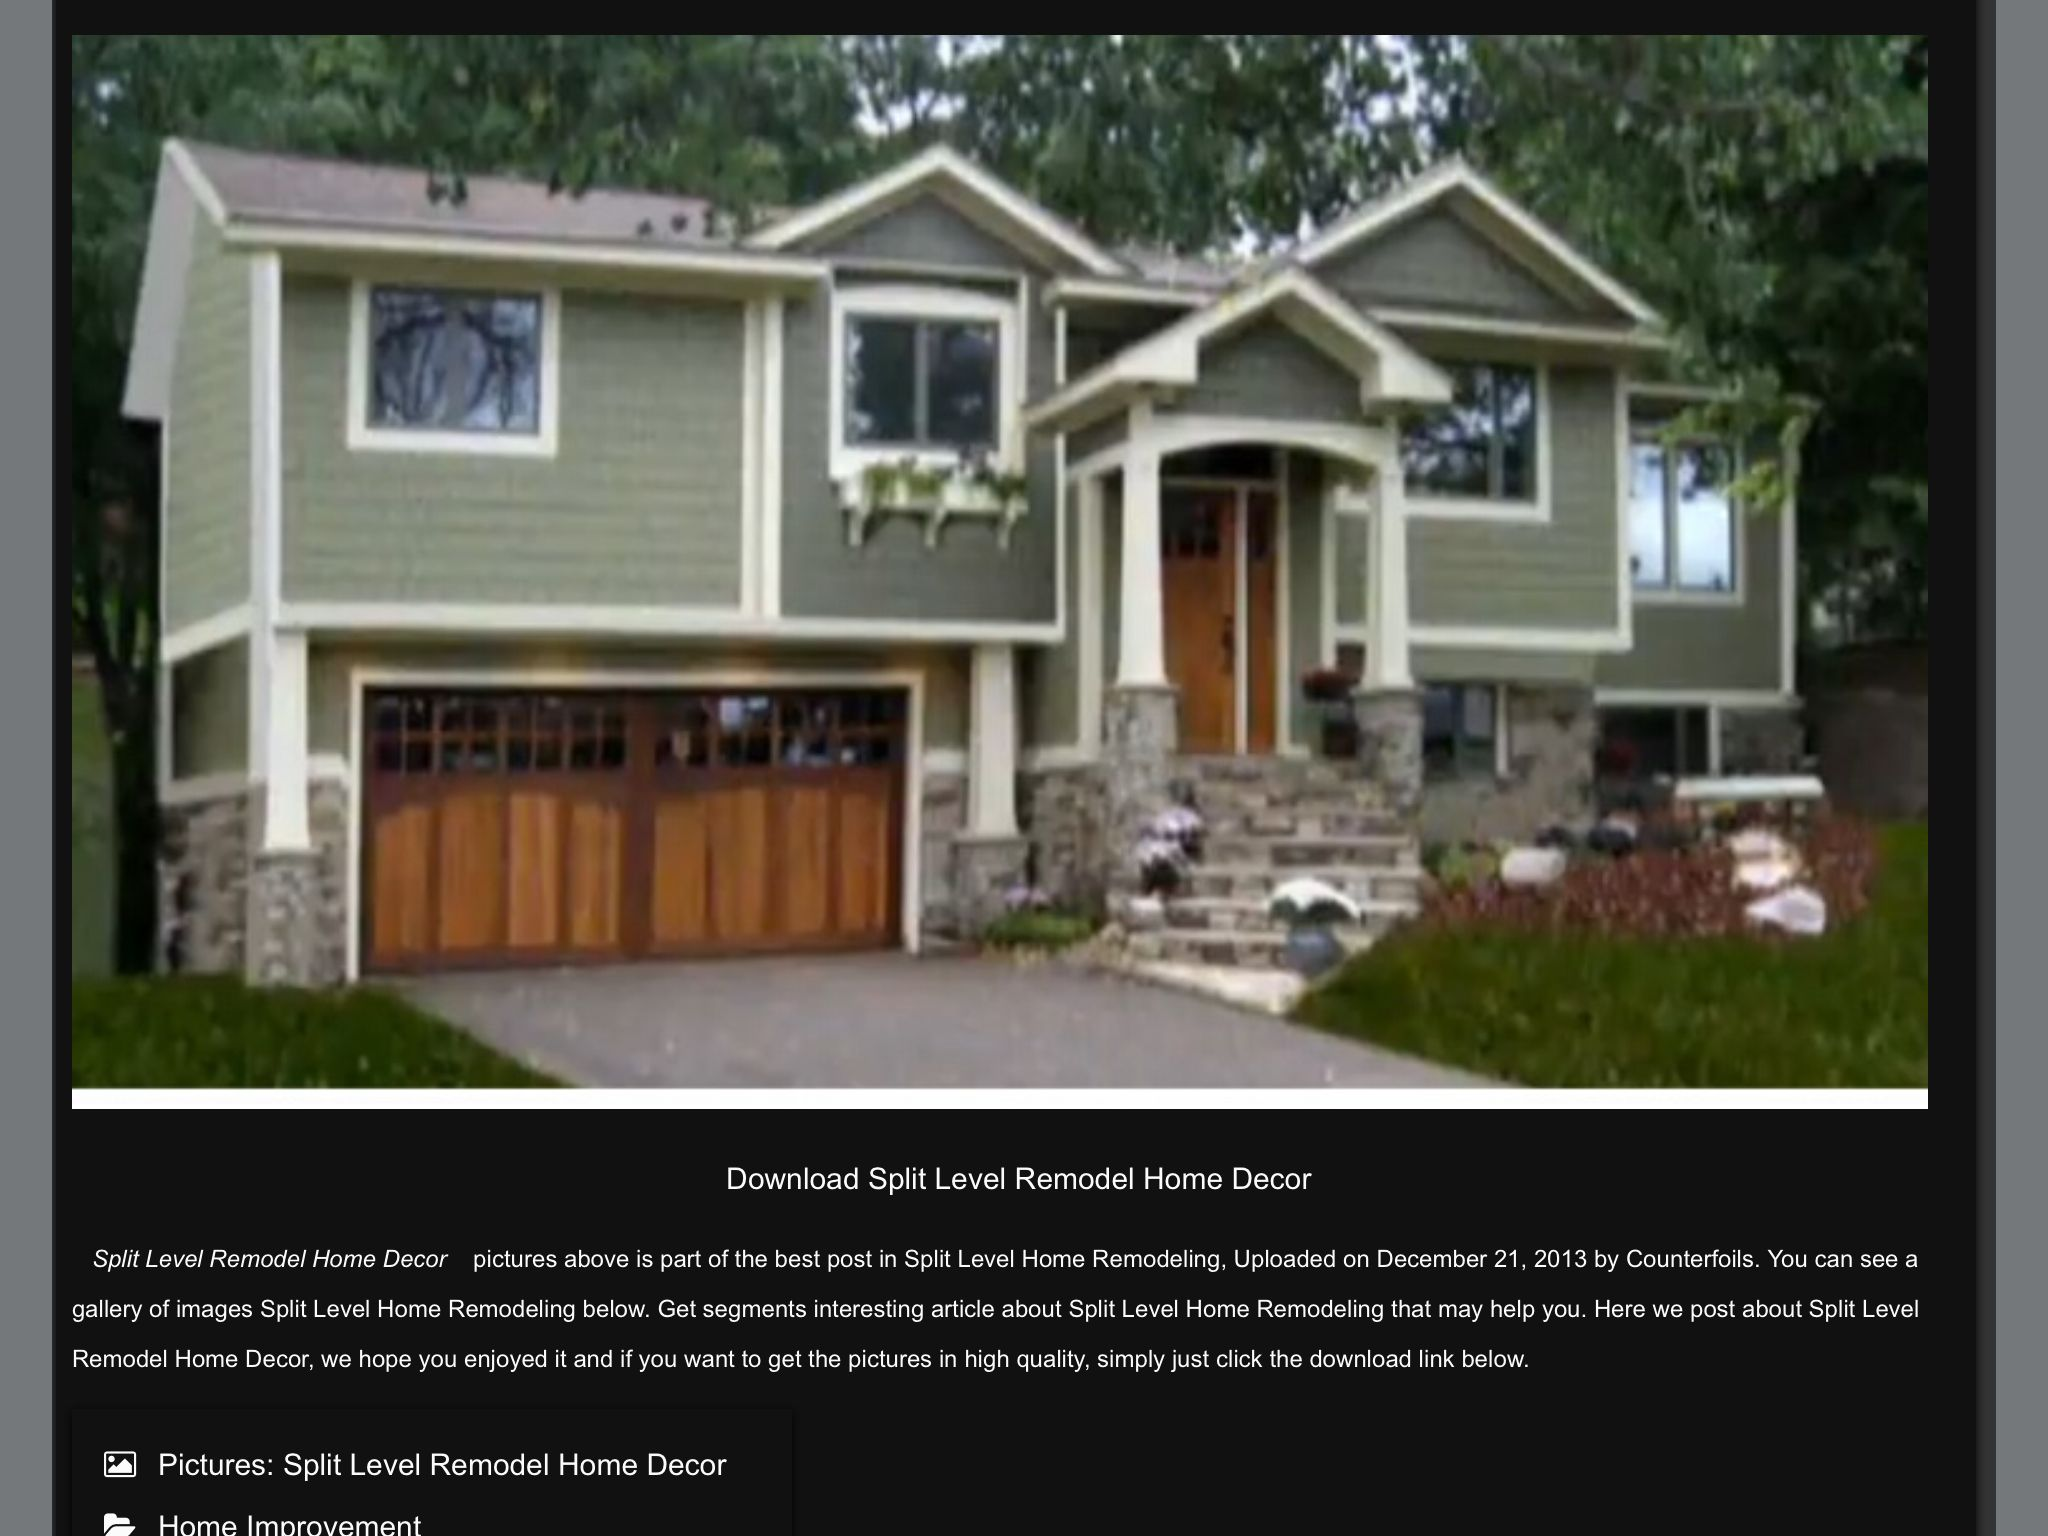 Here S A Great Example Of An Update To A Long Faced Split Level The Color And Texture Of The Garage Door A Split Entry Remodel Exterior Remodel Ranch Remodel